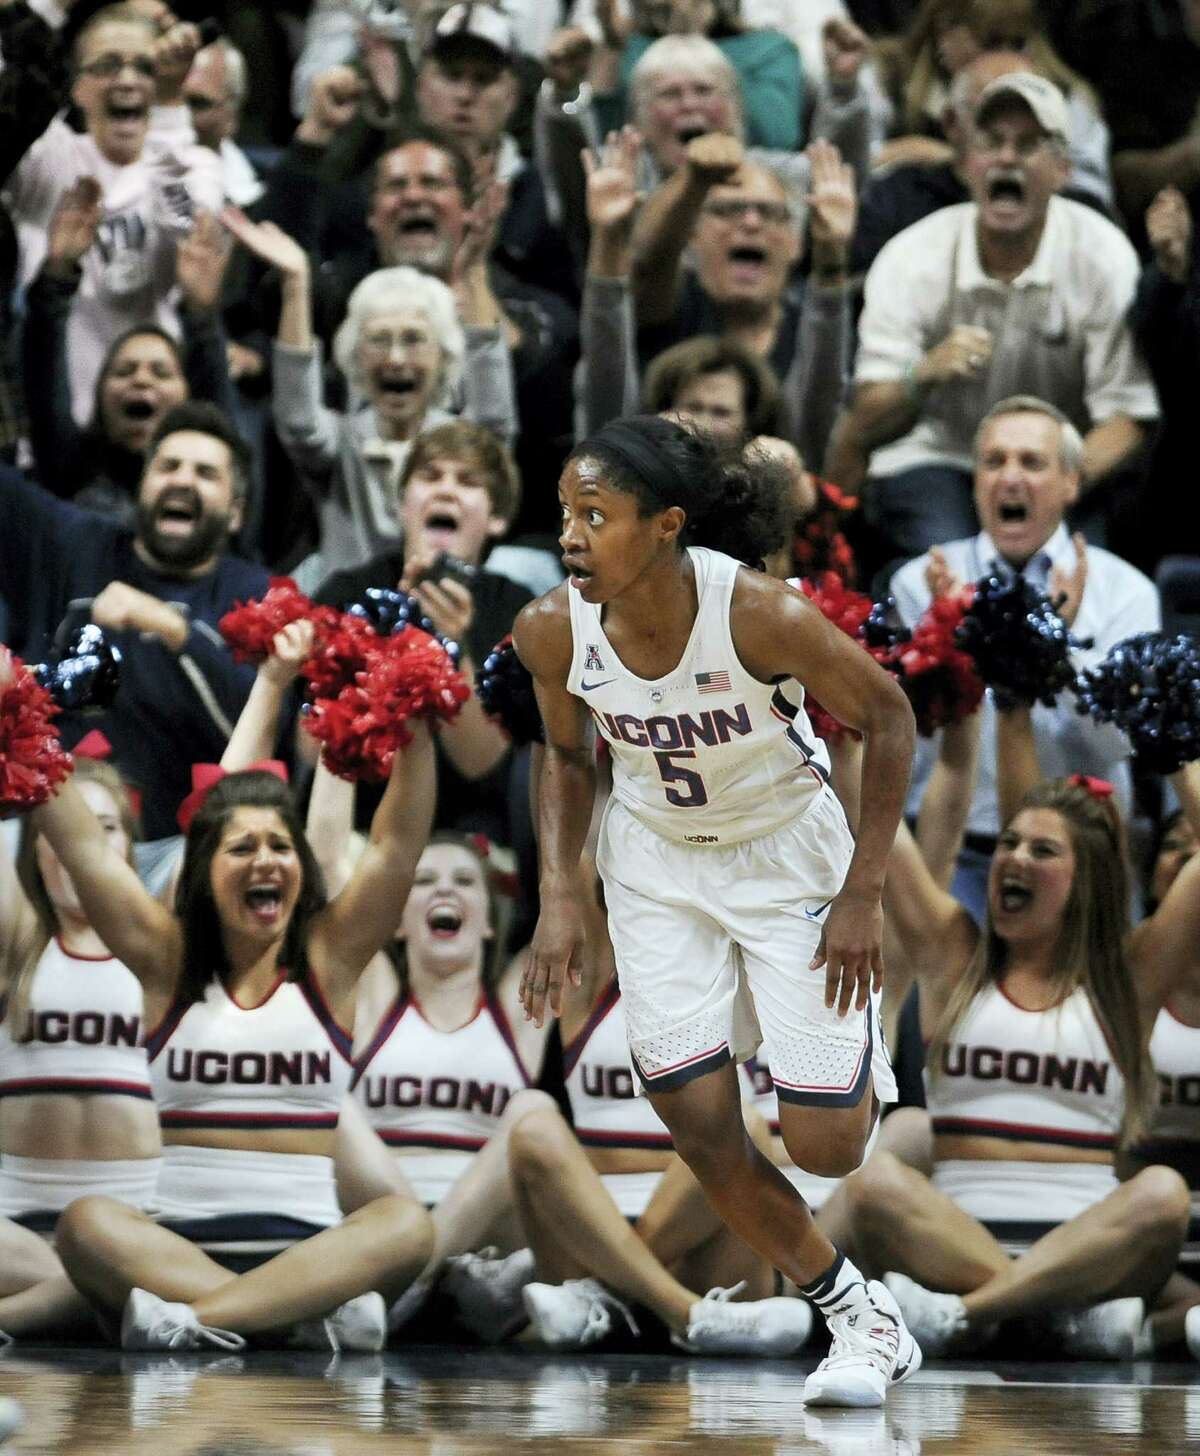 UConn's Crystal Dangerfield watches her shot go in as fans cheer behind her in the second half.